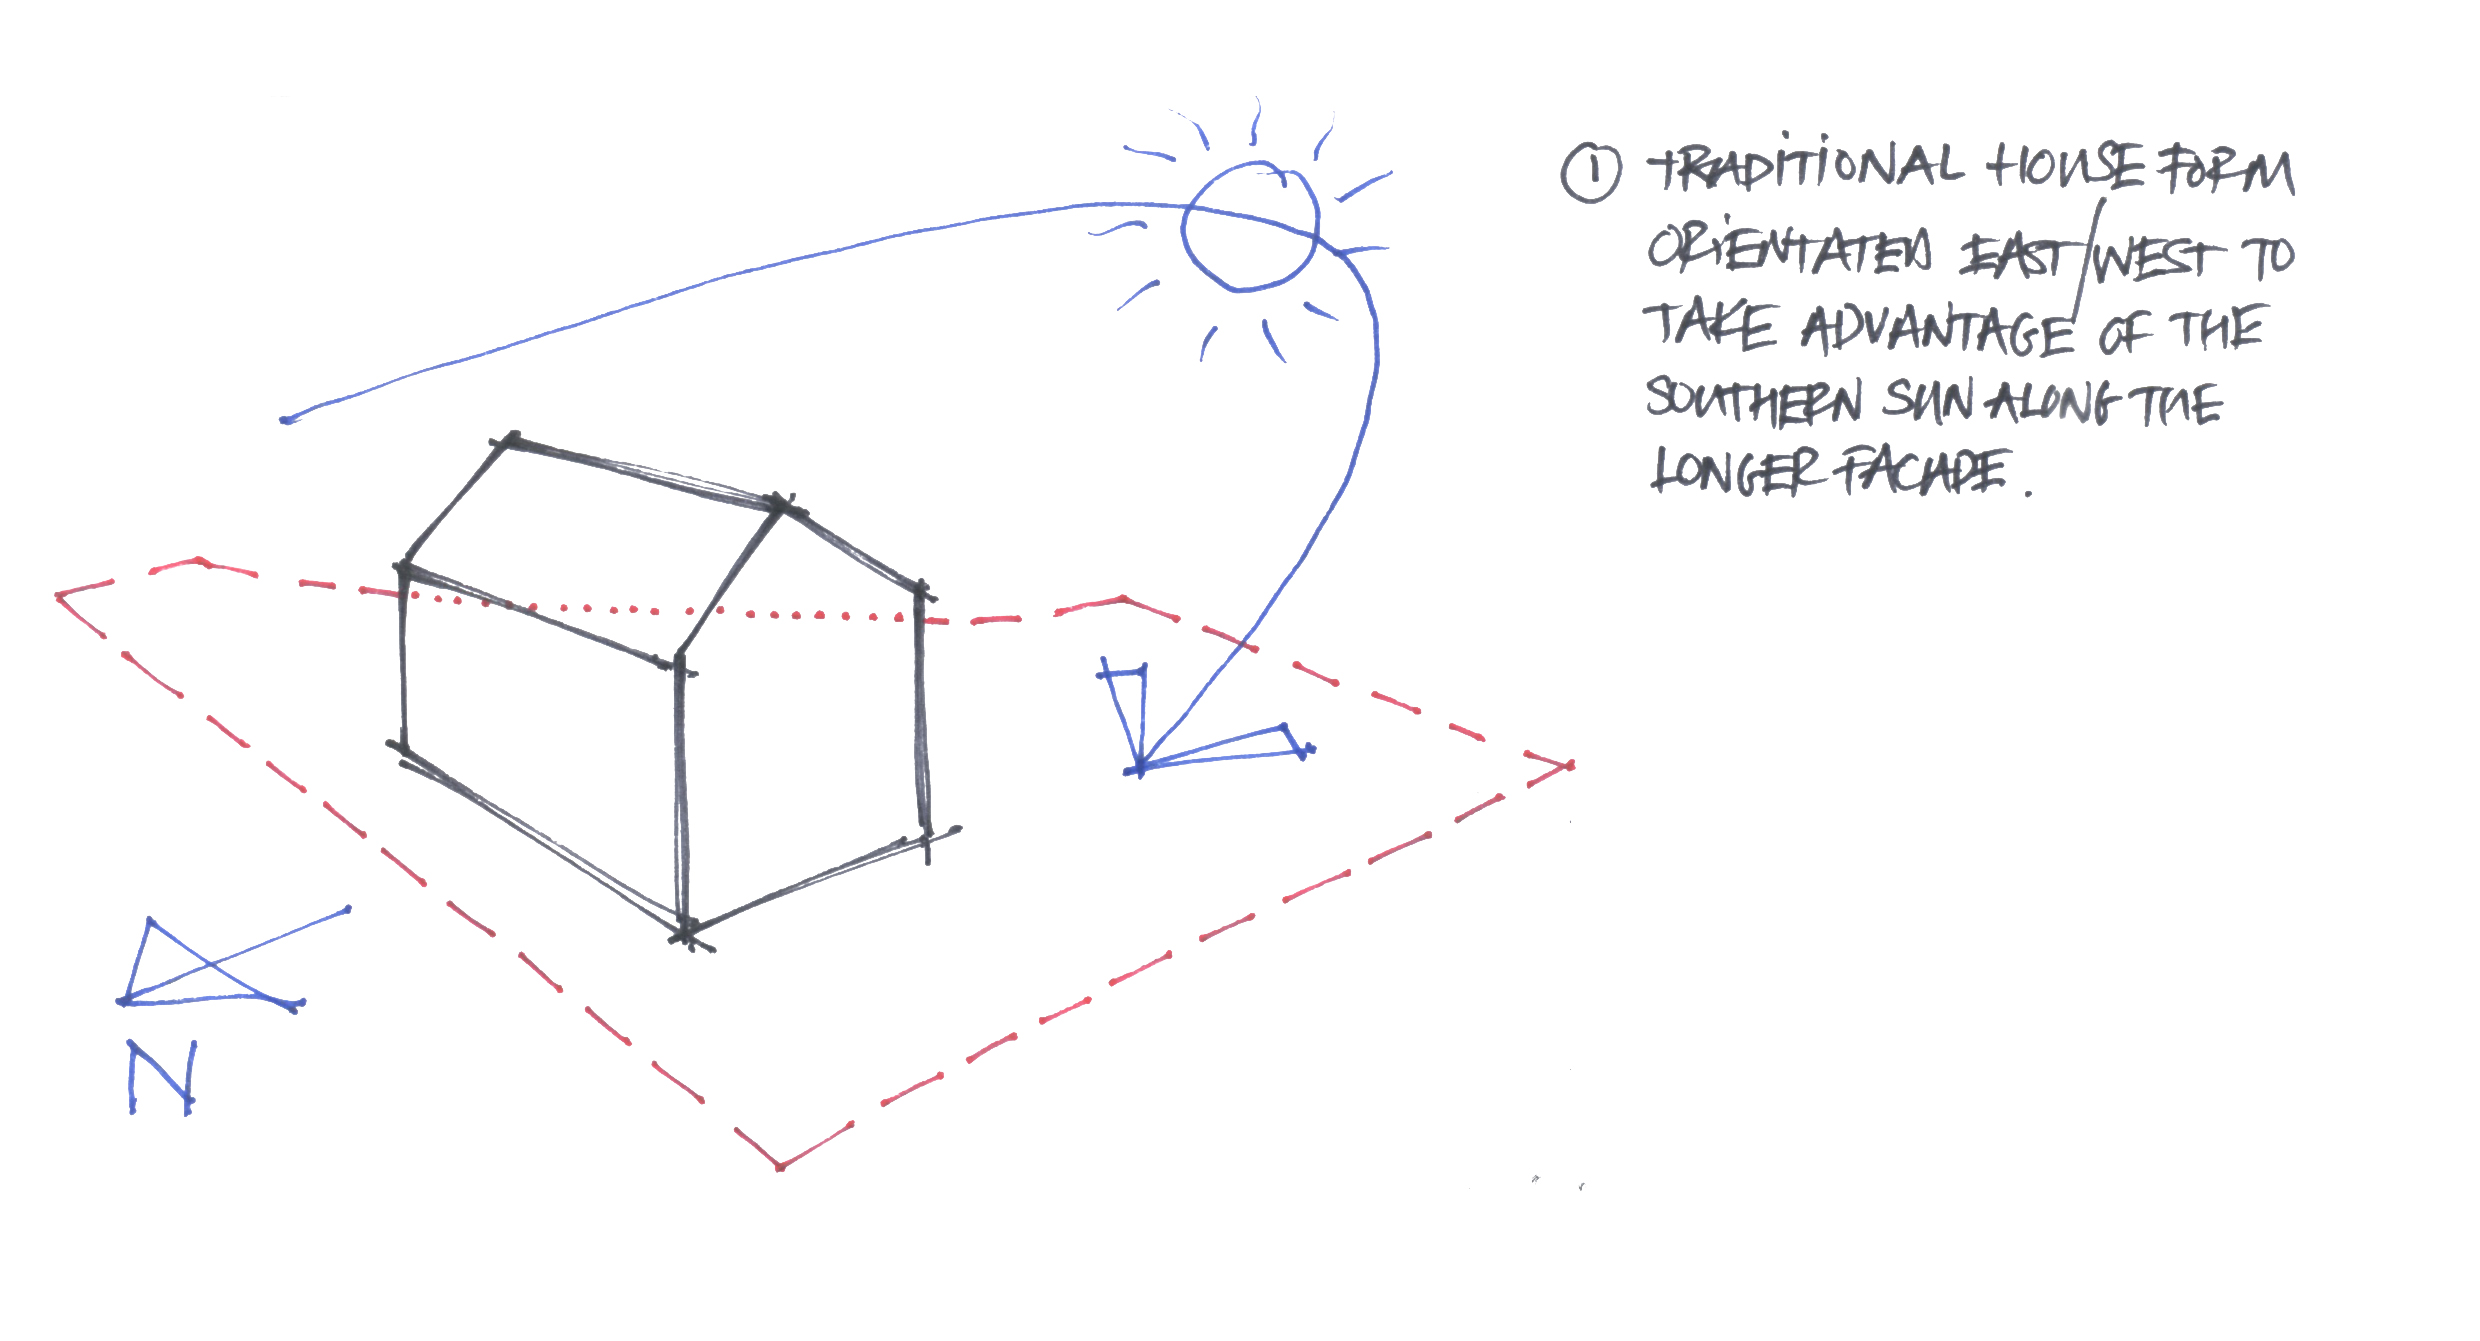 Orientating the house with the sun path